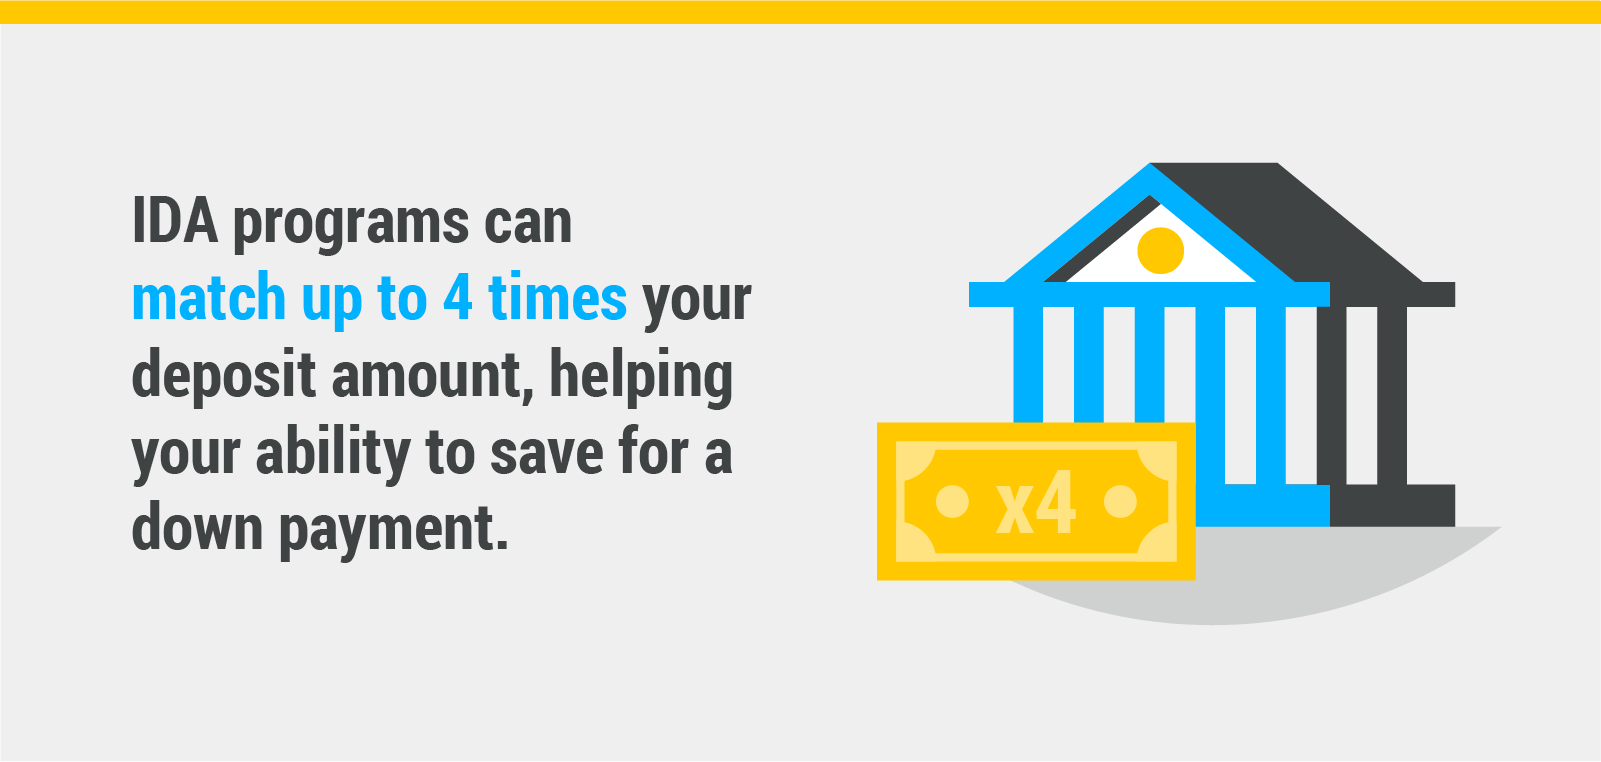 IDA programs can match up to 4 times your deposit amount